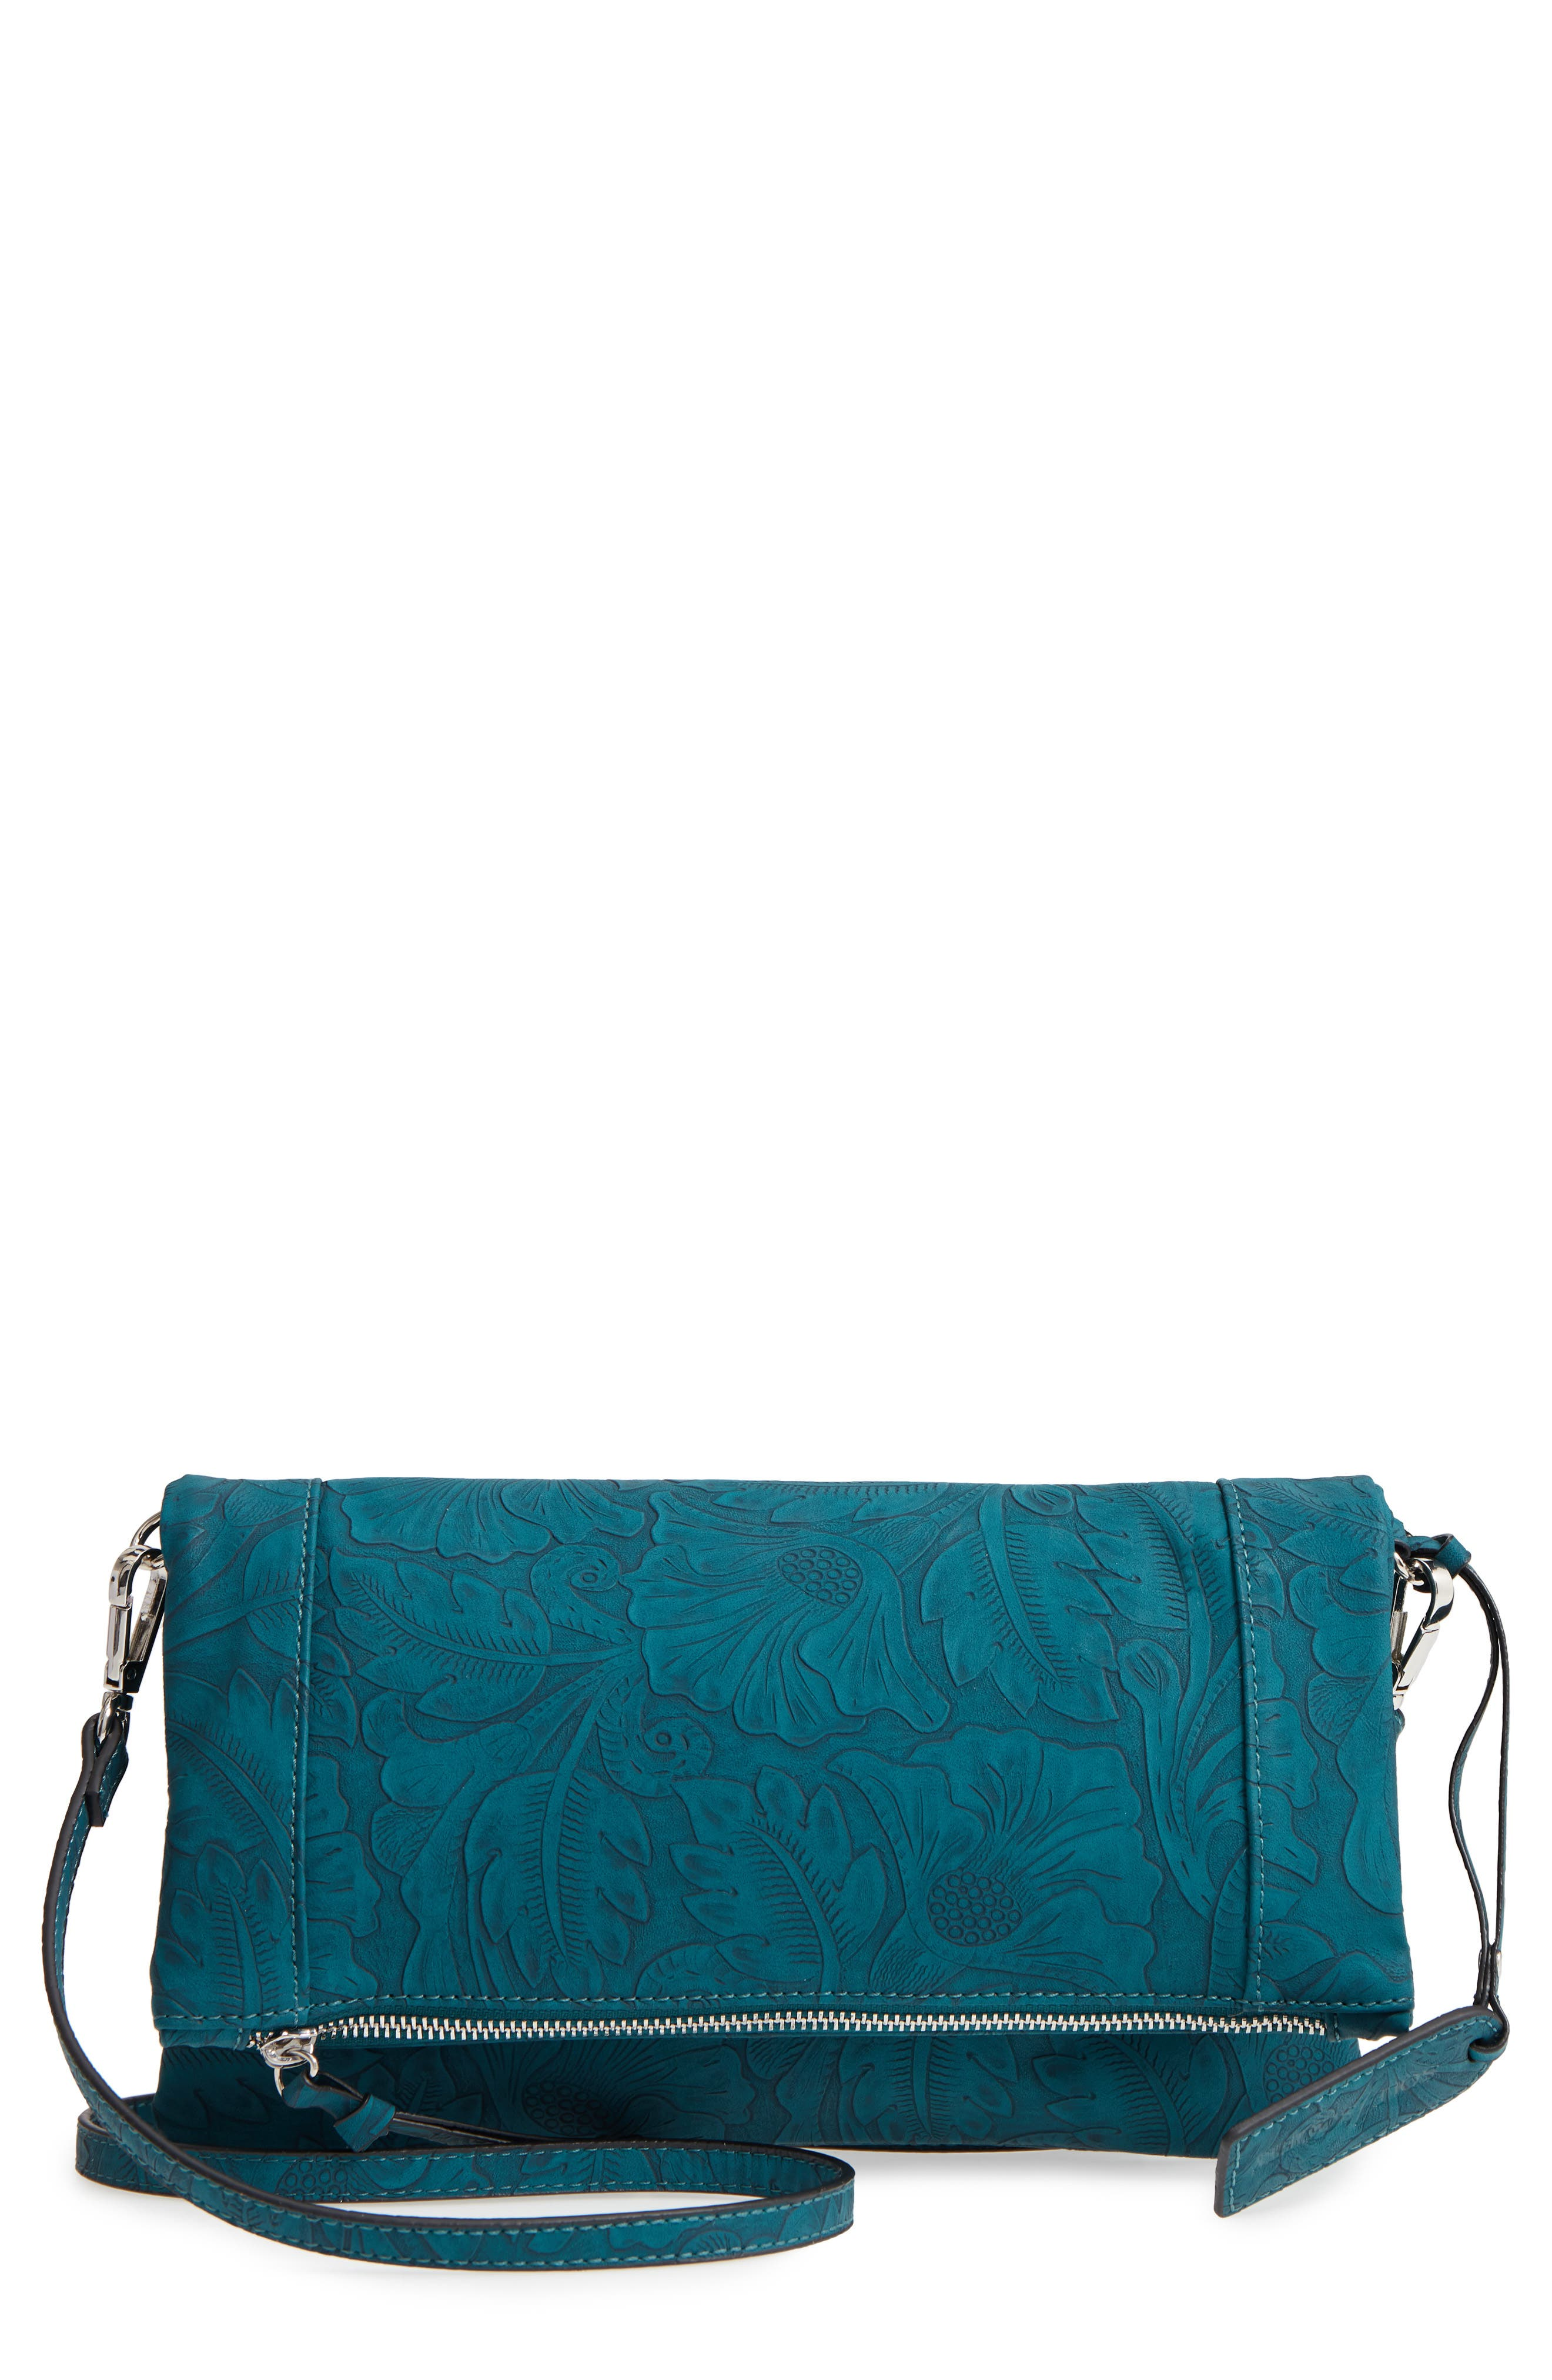 Tooled Faux Leather Foldover Clutch,                             Main thumbnail 1, color,                             Teal